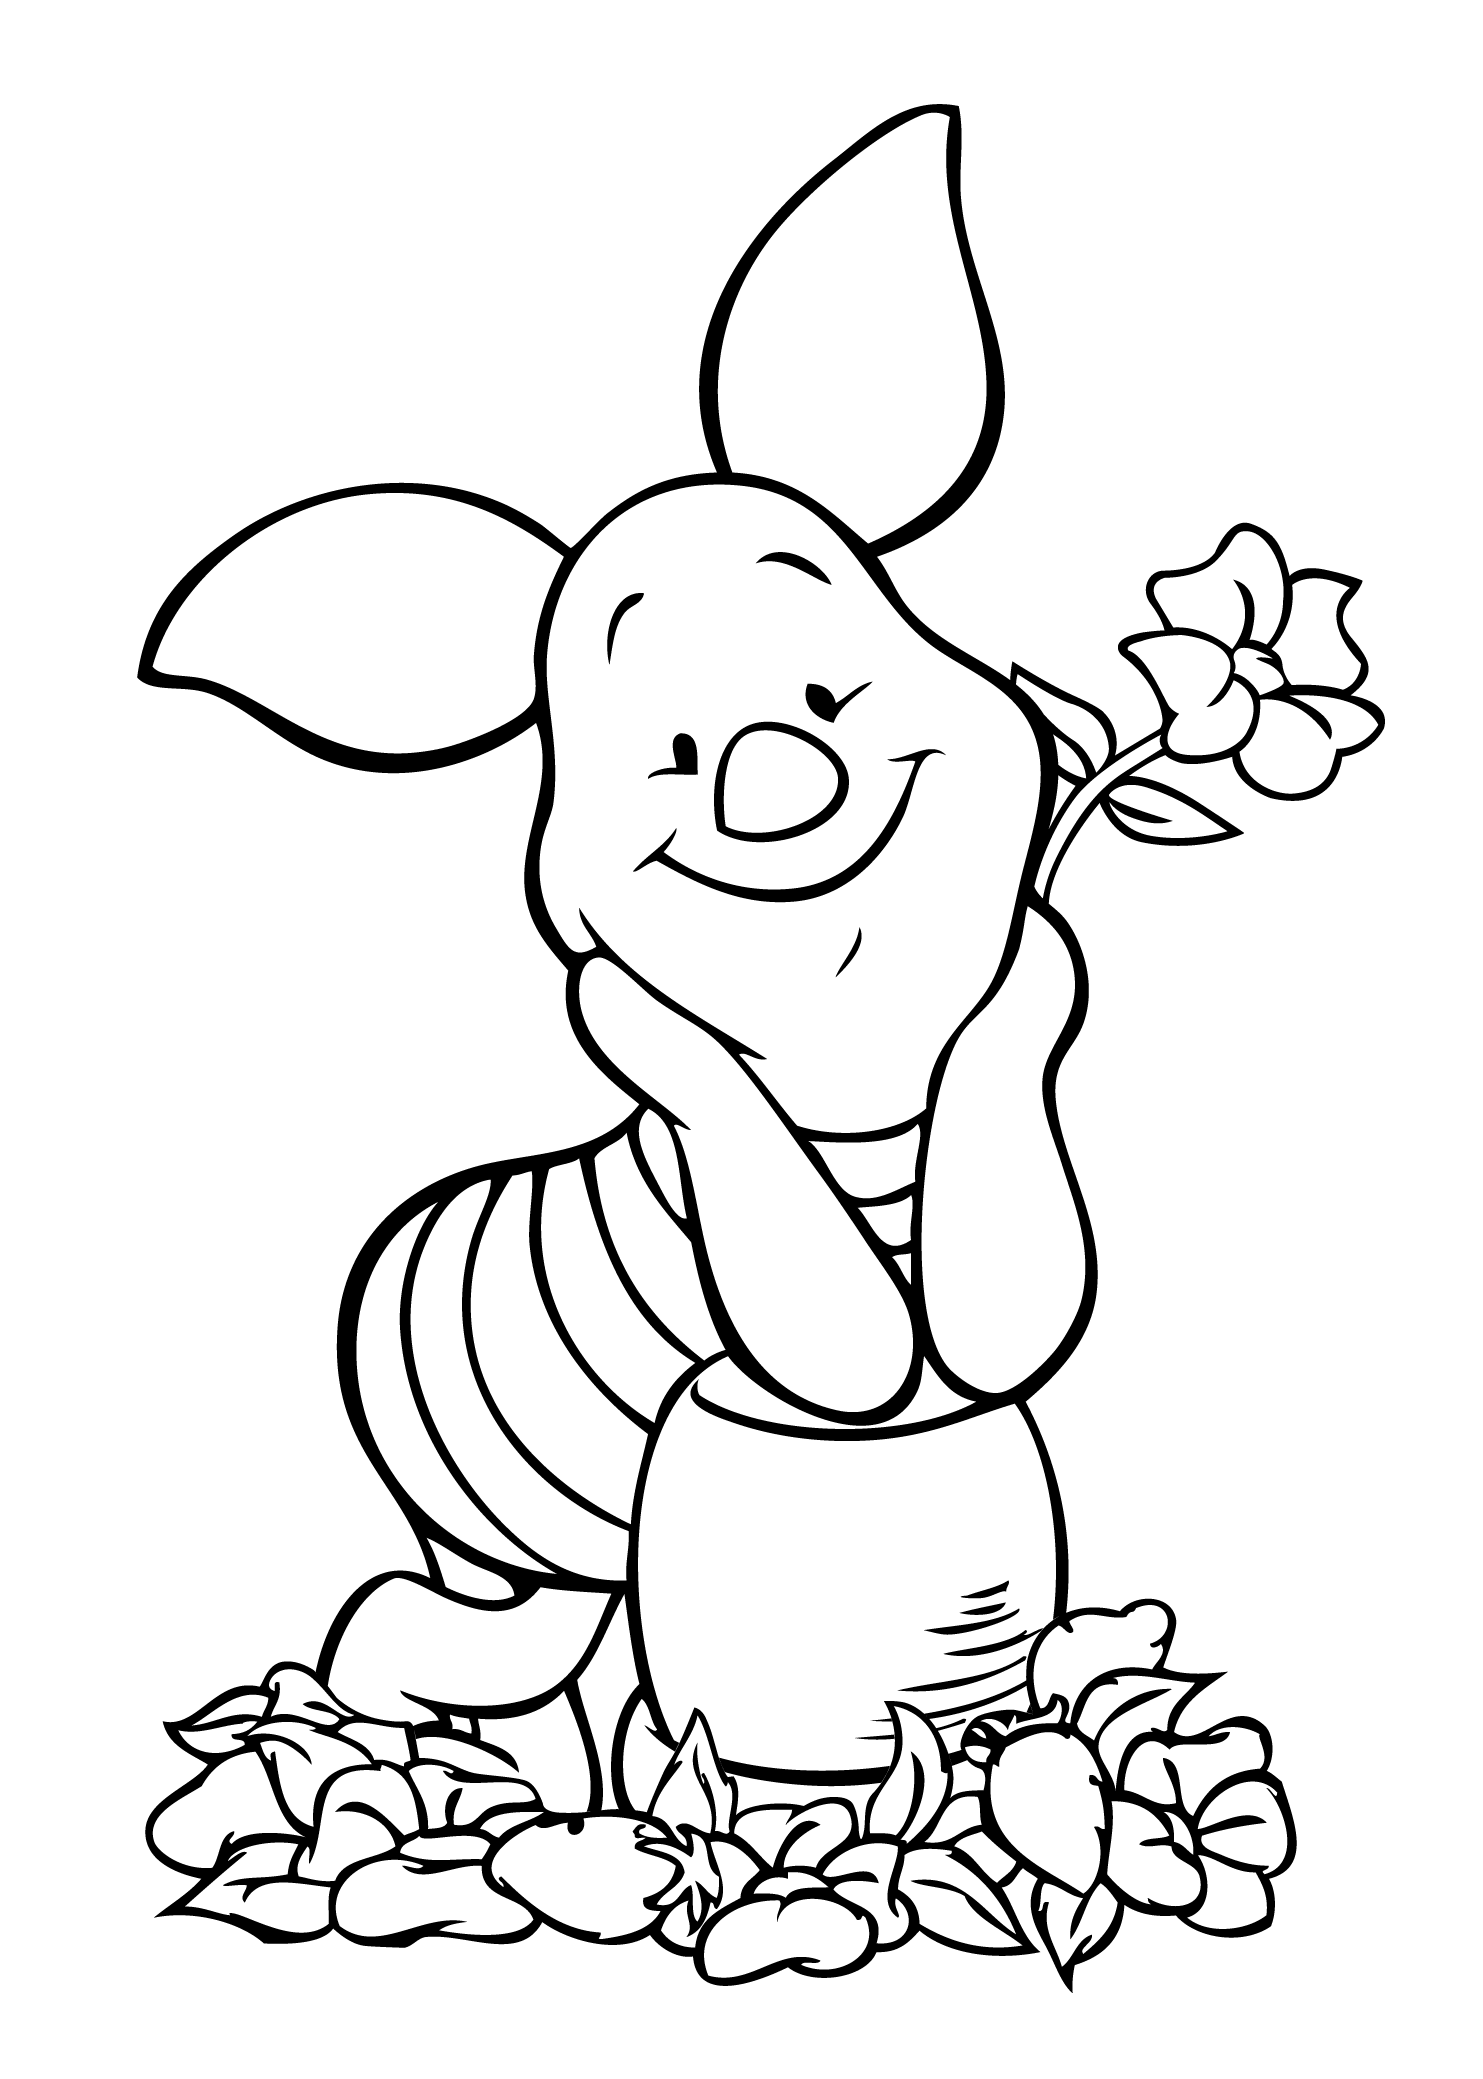 Winnie Pooh piglet coloring page | baby board | Pinterest | Colorear ...